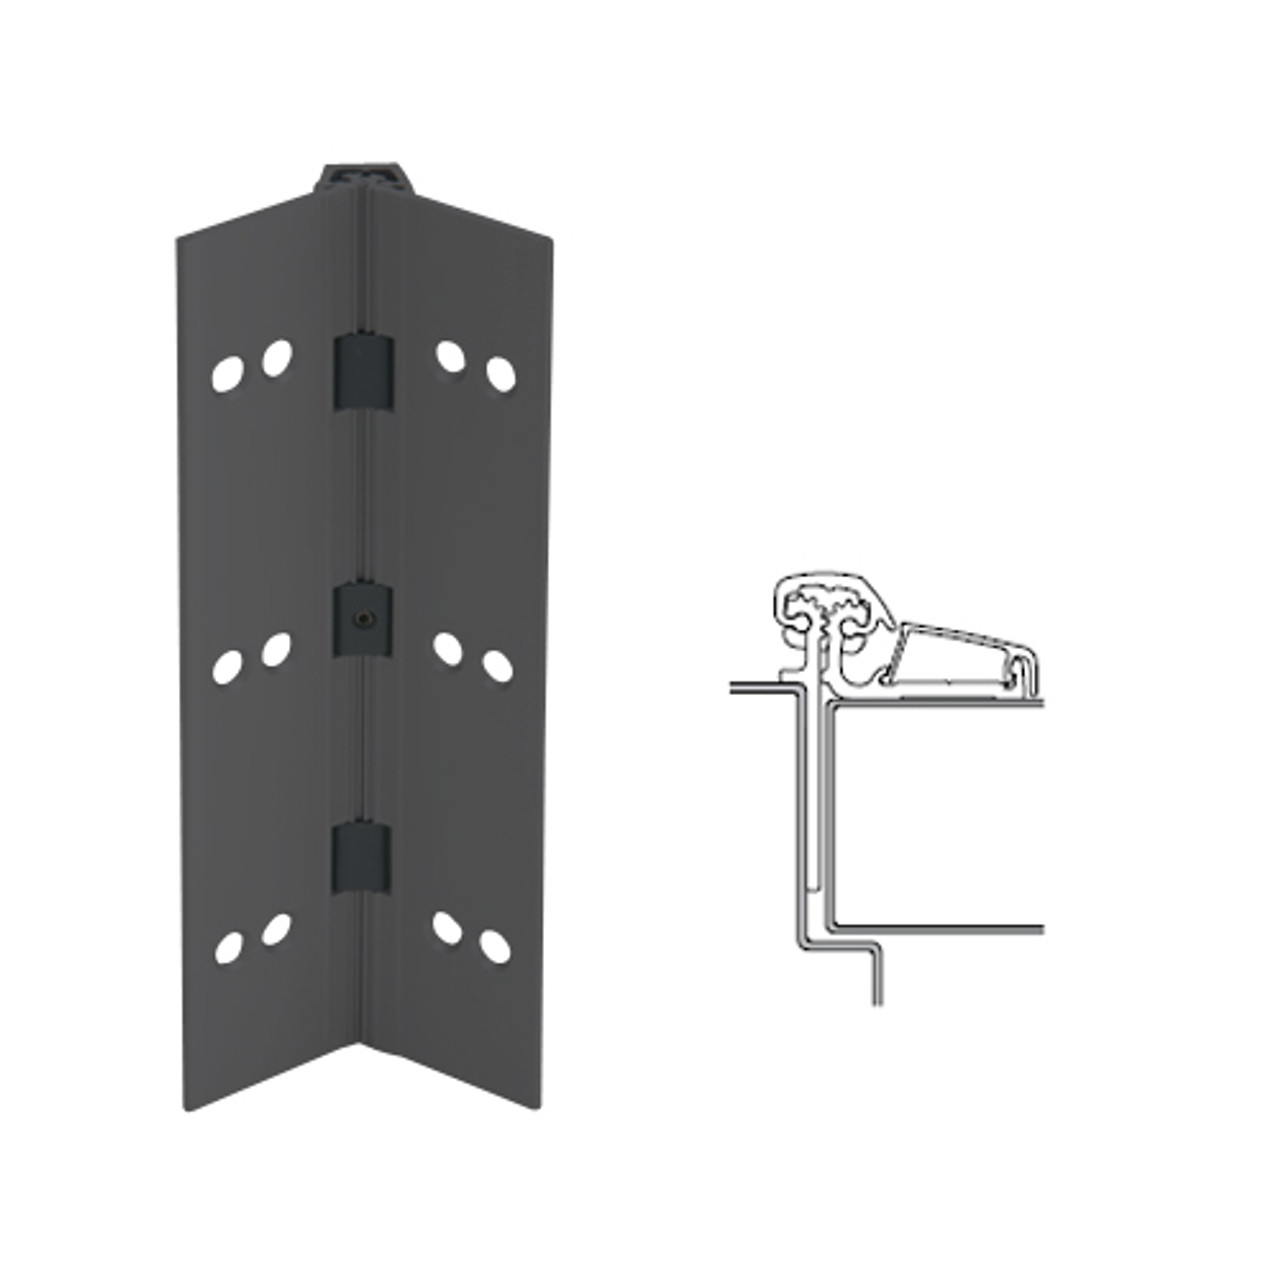 053XY-315AN-120-TEKWD IVES Adjustable Half Surface Continuous Geared Hinges with Wood Screws in Anodized Black